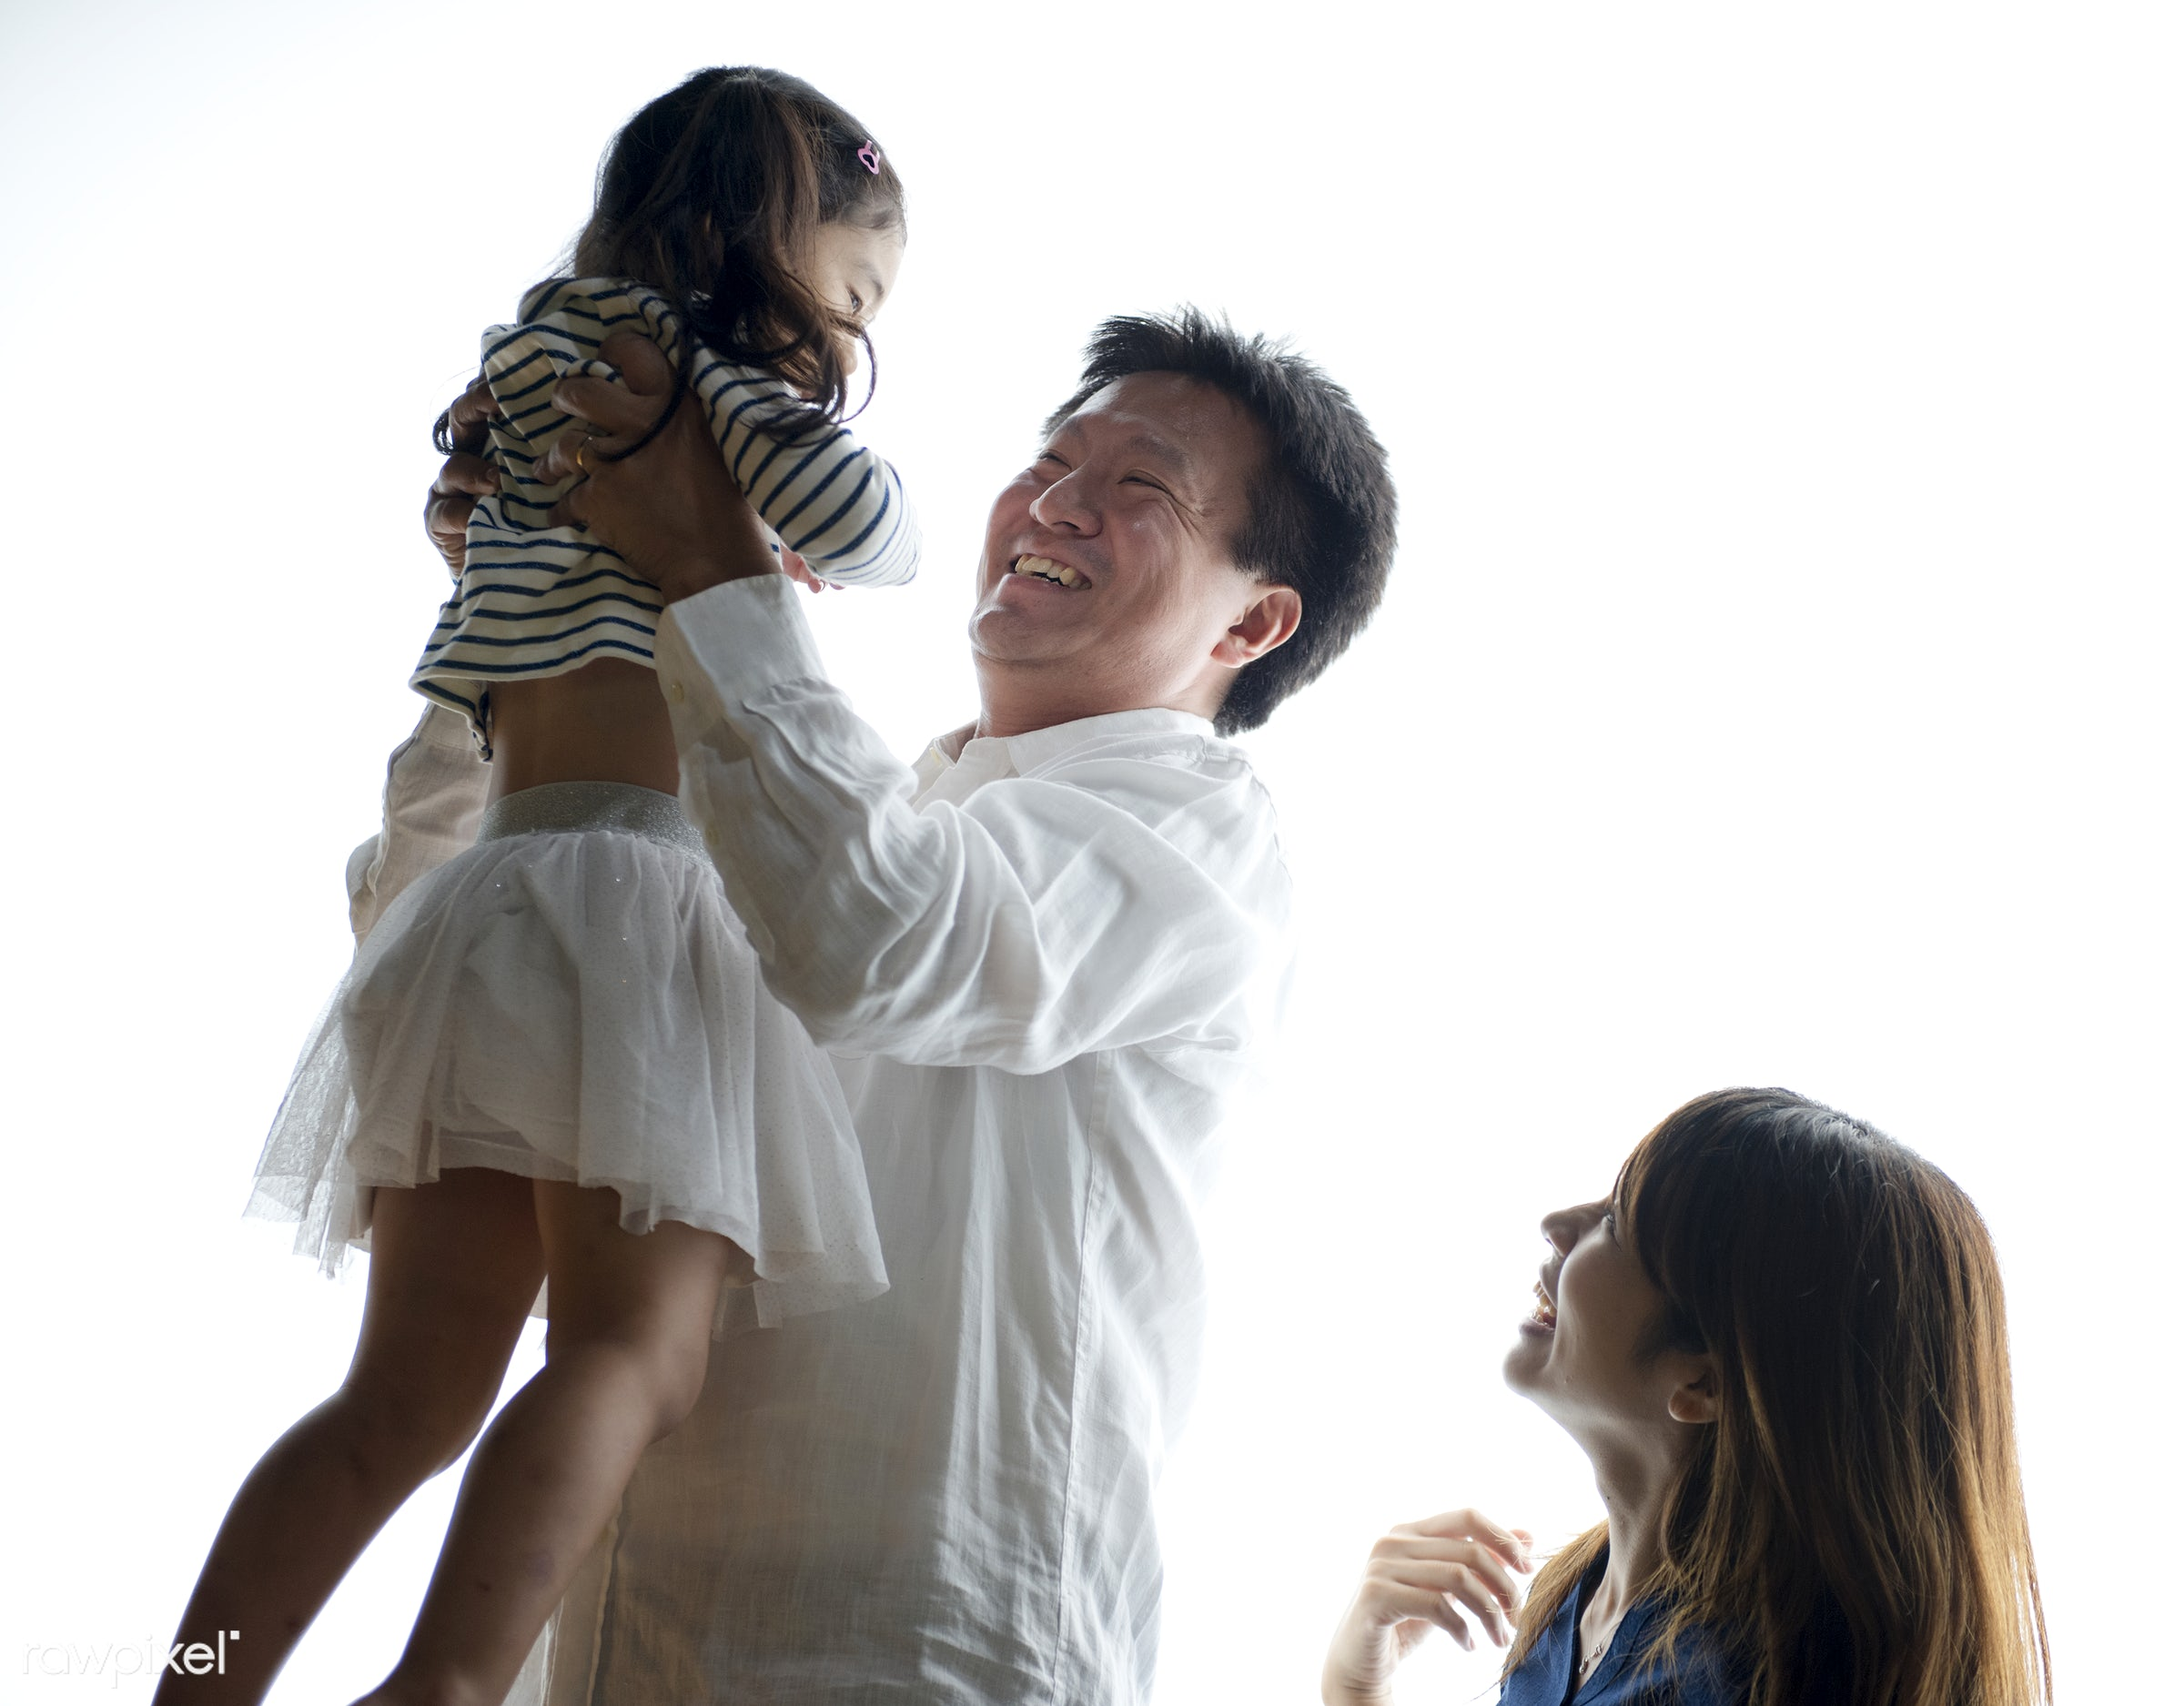 asia, asian, bonding, carrying, casual, child, childhood, daughter, family, father, girl, happiness, japan, japanese, kid,...